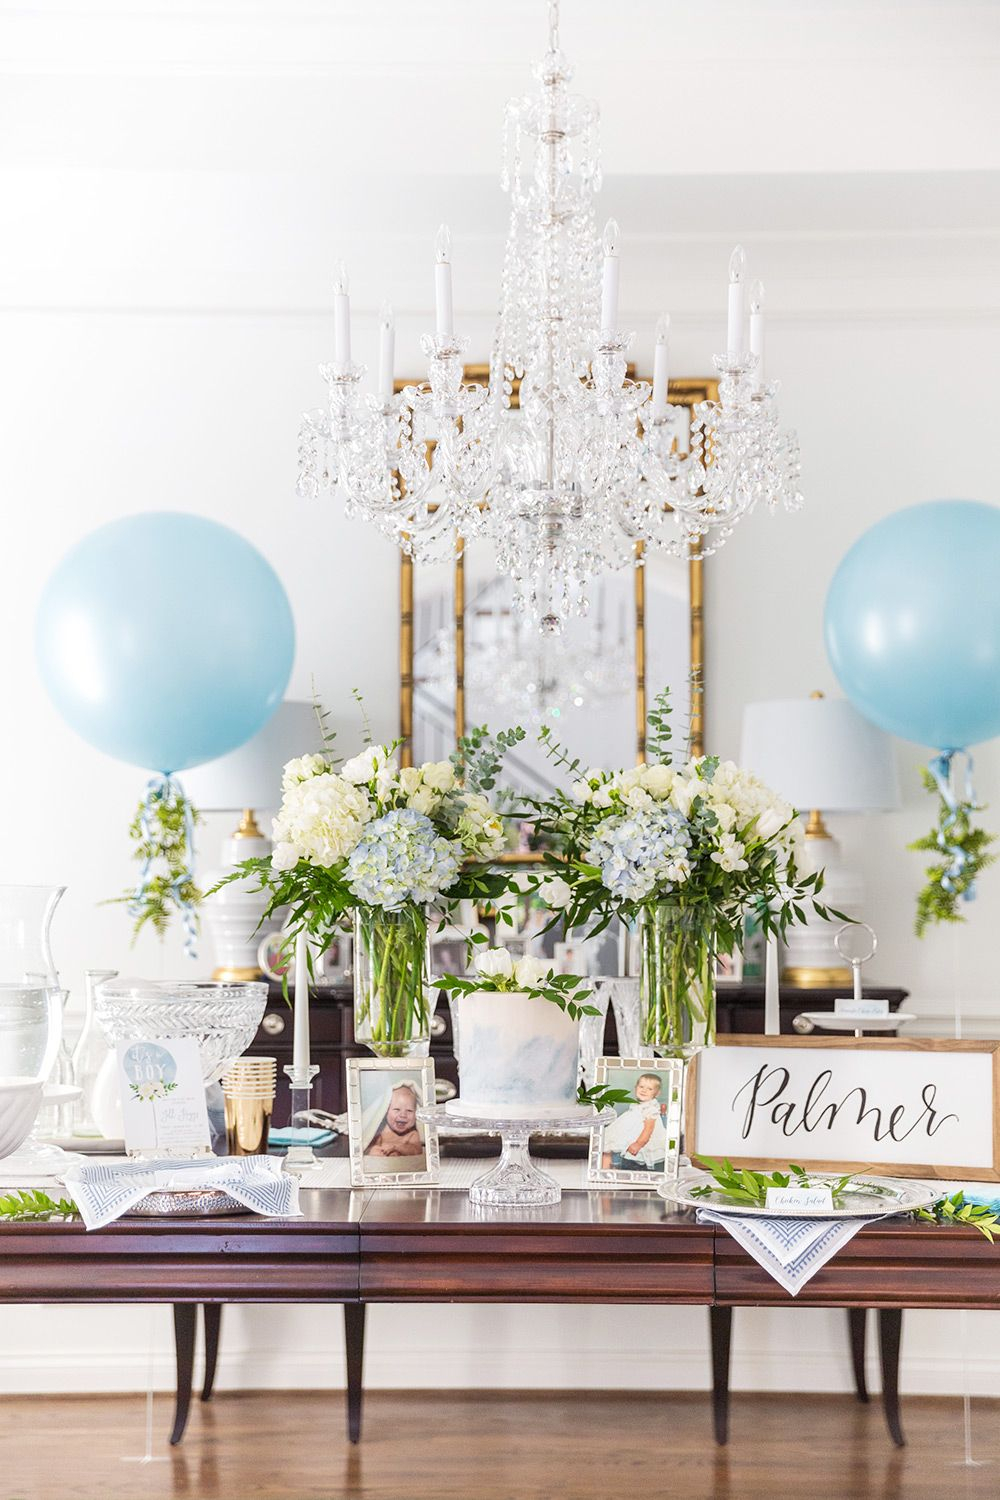 10 Beautiful Blue And White Baby Shower Ideas how to host an elegant blue and white baby shower baby shower 2020